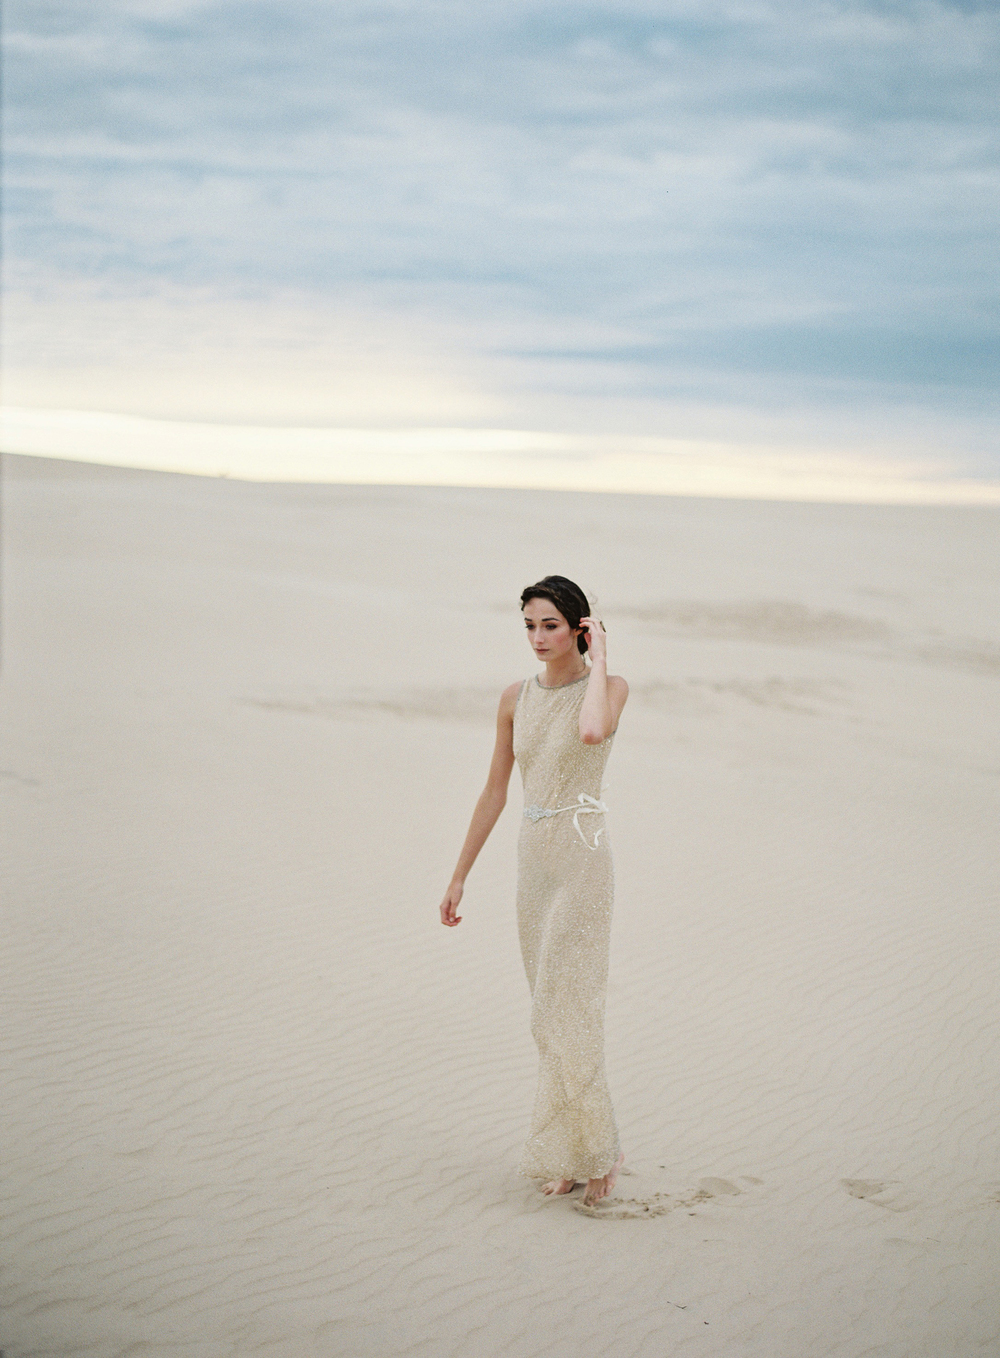 Kyle John l Fine Art Wedding Photography l Chicago, Copenhagen, California, New York, Destination l Blog l Millicent_21